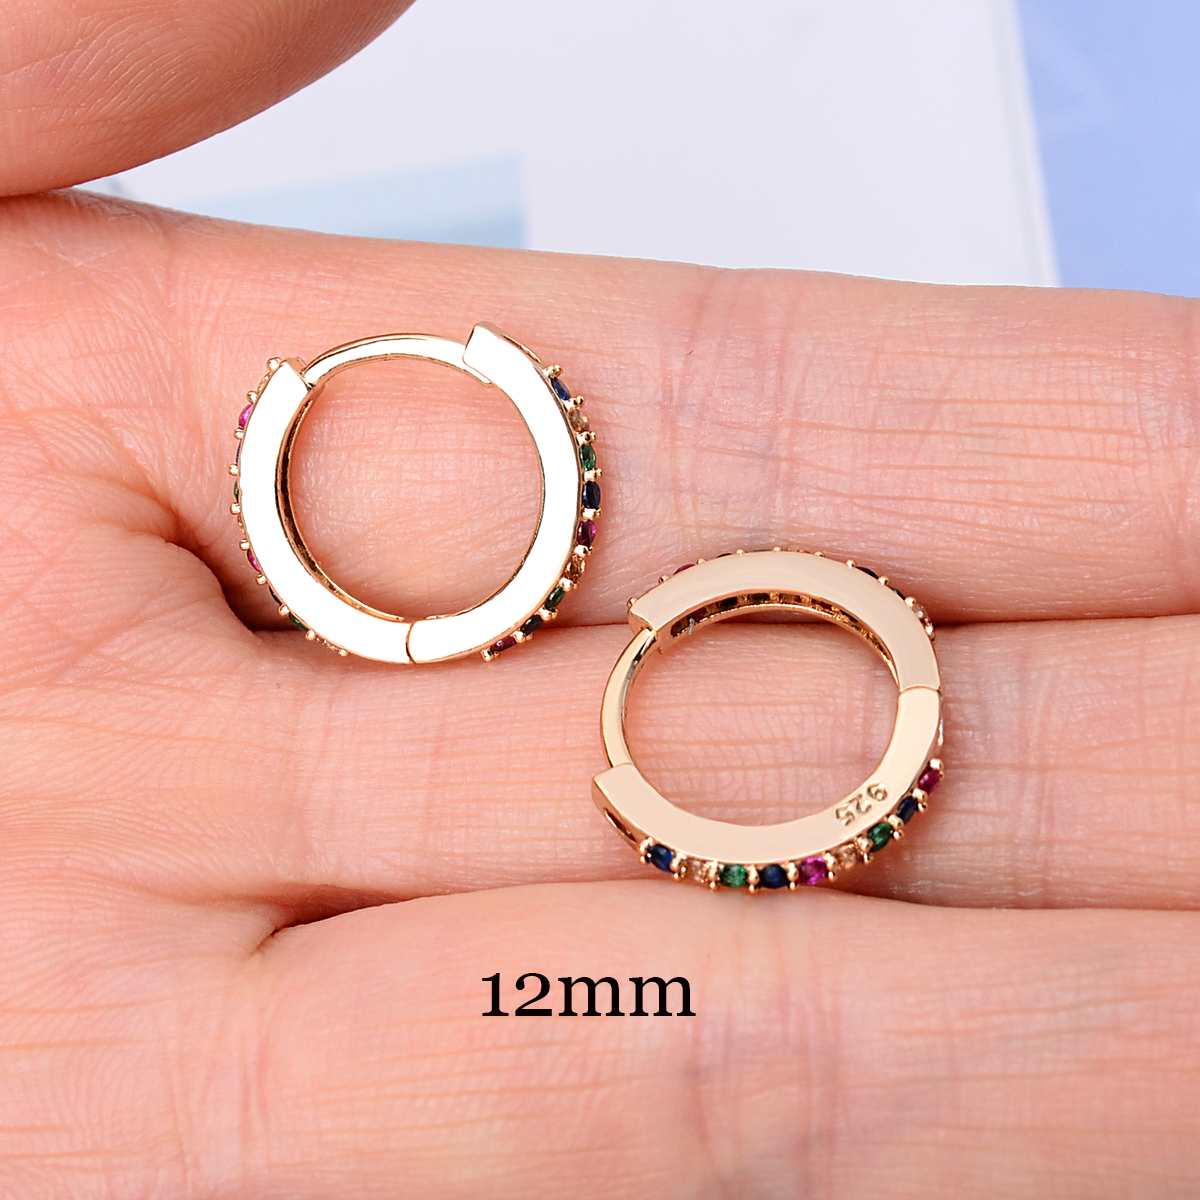 1 Piece Small Girls Hoop Earrings Tiny Ear Rings Cartilage Huggies Piercing Hoop Studs Conch Earlobe Tragus Circle Women Hoops